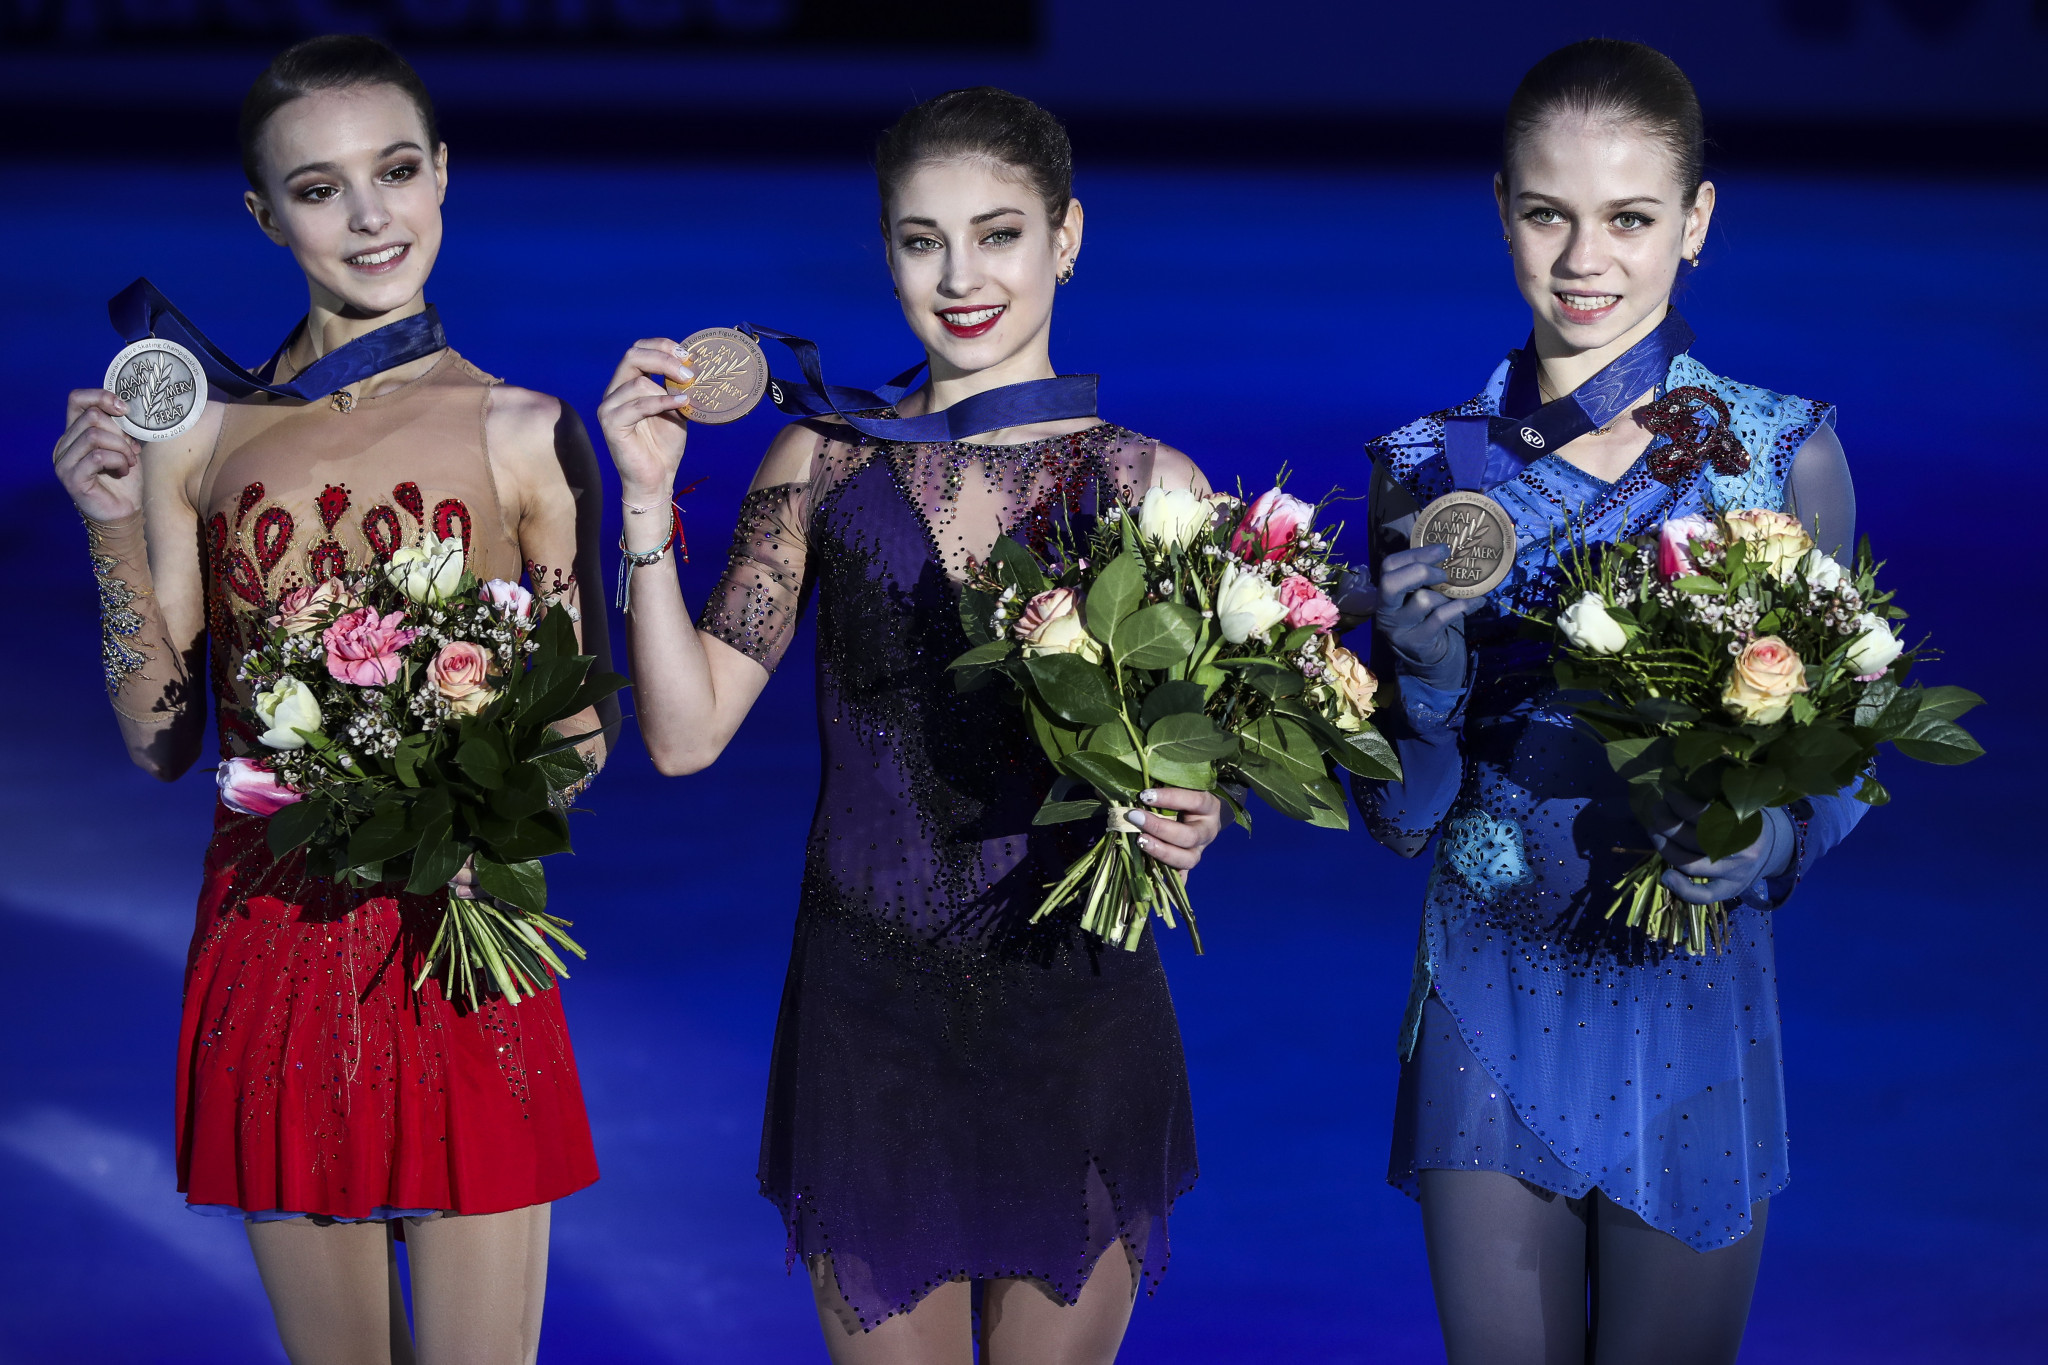 Alena Kostornaia, centre, clinched gold with Anna Shcherbakova, left, and Alexandra Trusova, right, taking silver and bronze respectively at this year's European Championships ©Getty Images